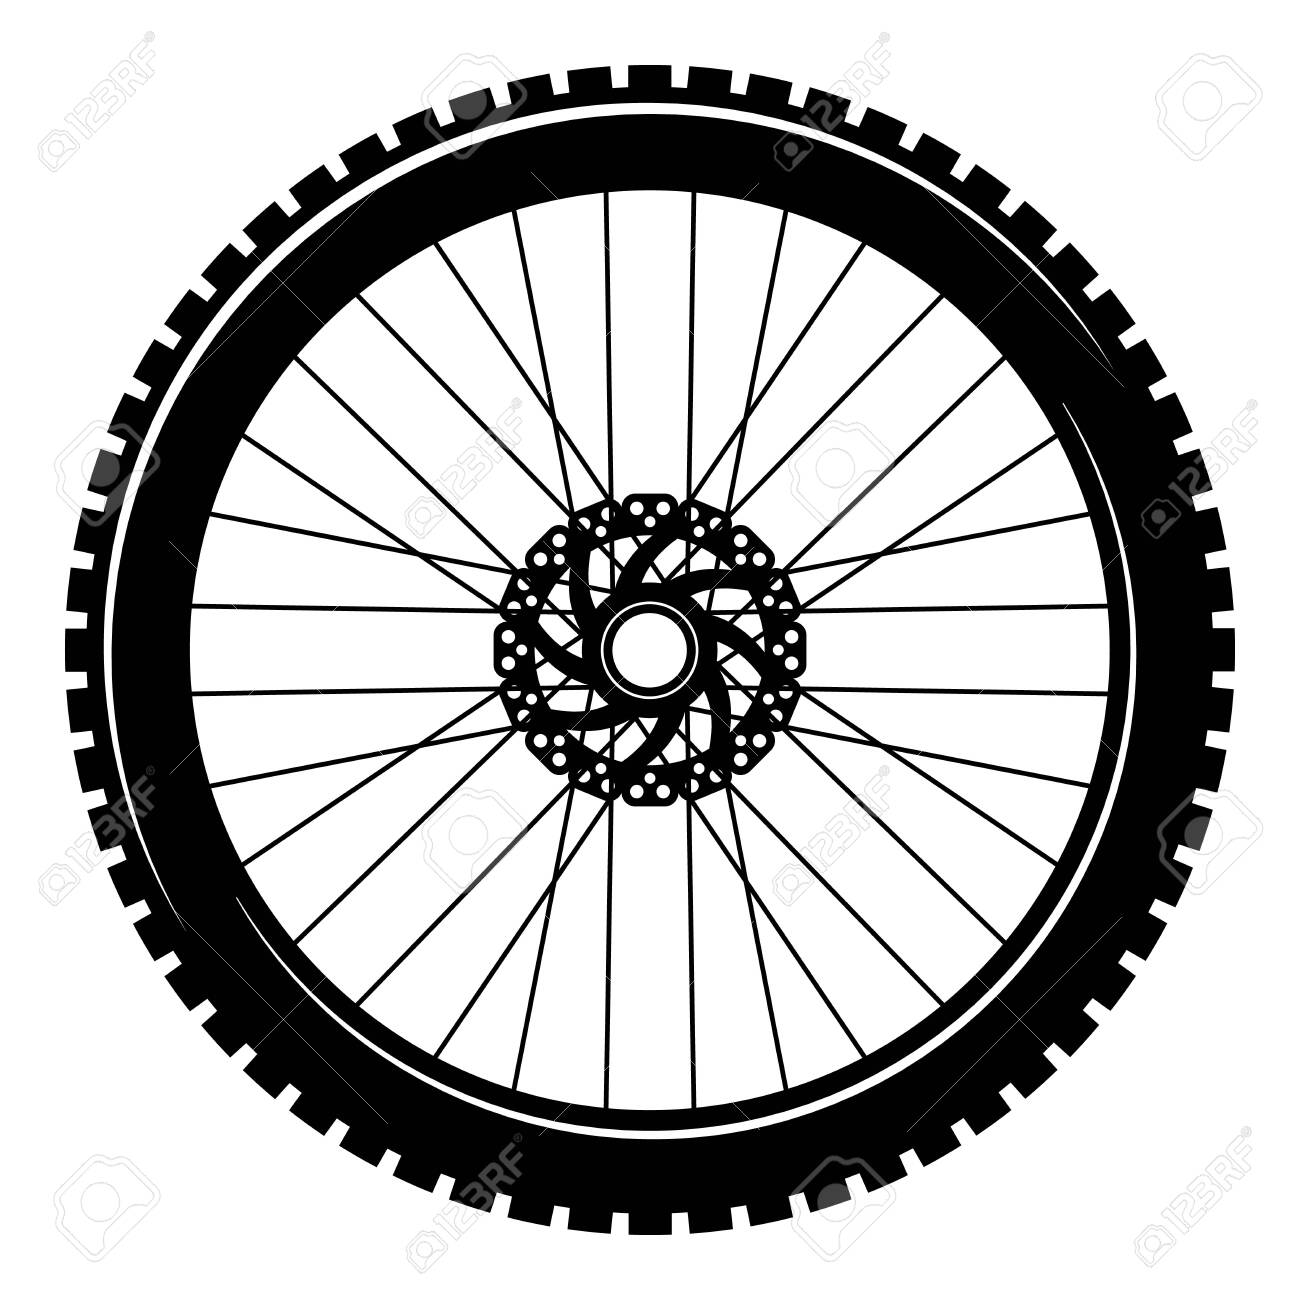 Bicycle wheel isolated on white background. Stock vector illustration - 149380210